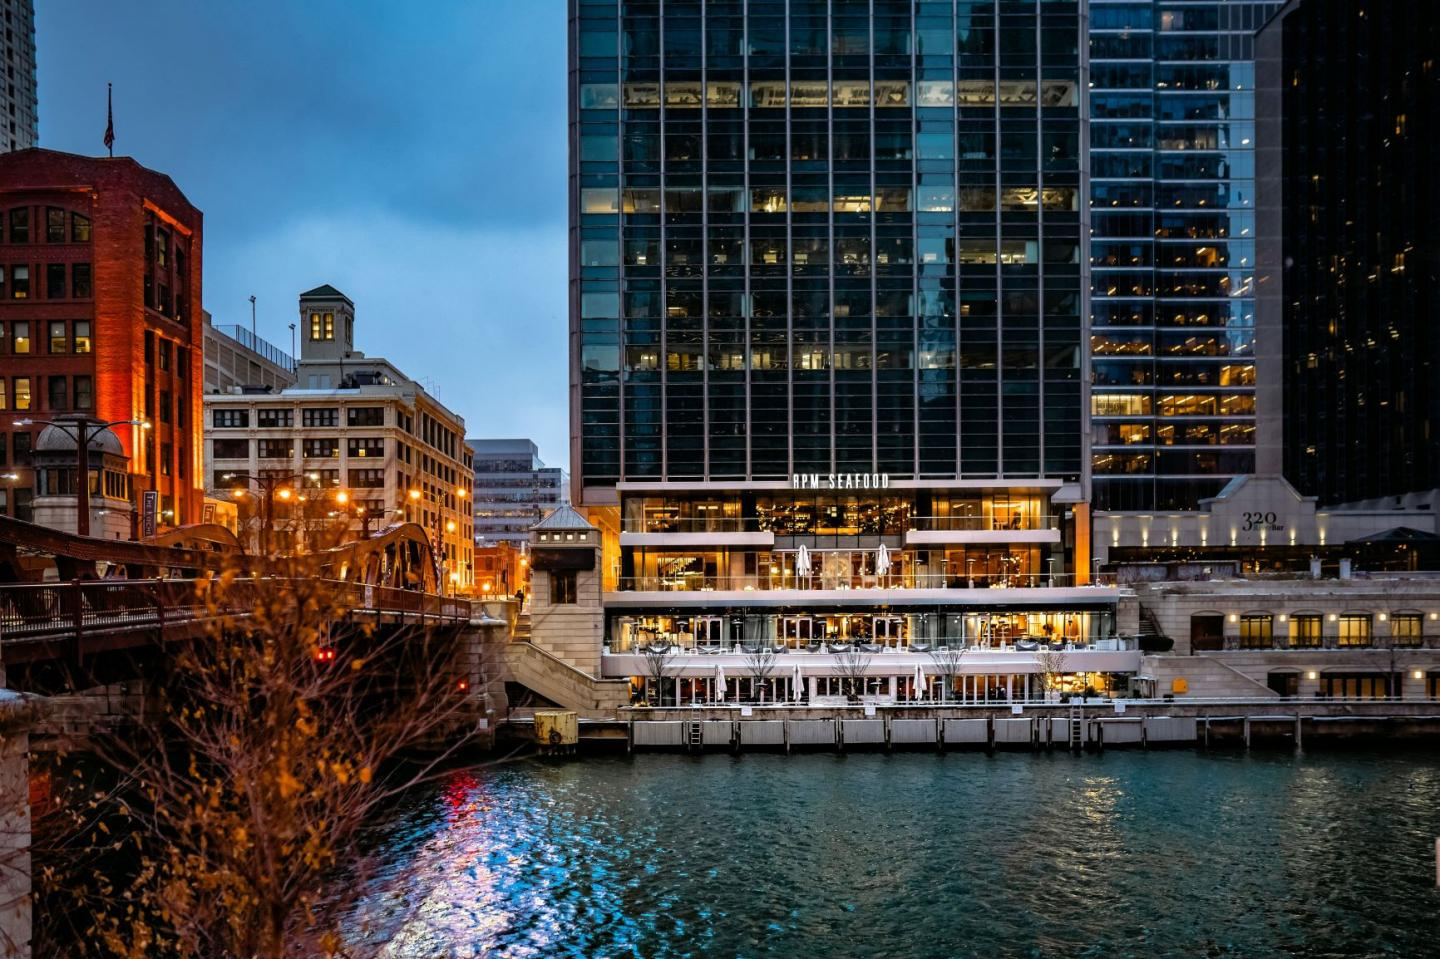 View of RPM Seafood from the Chicago River